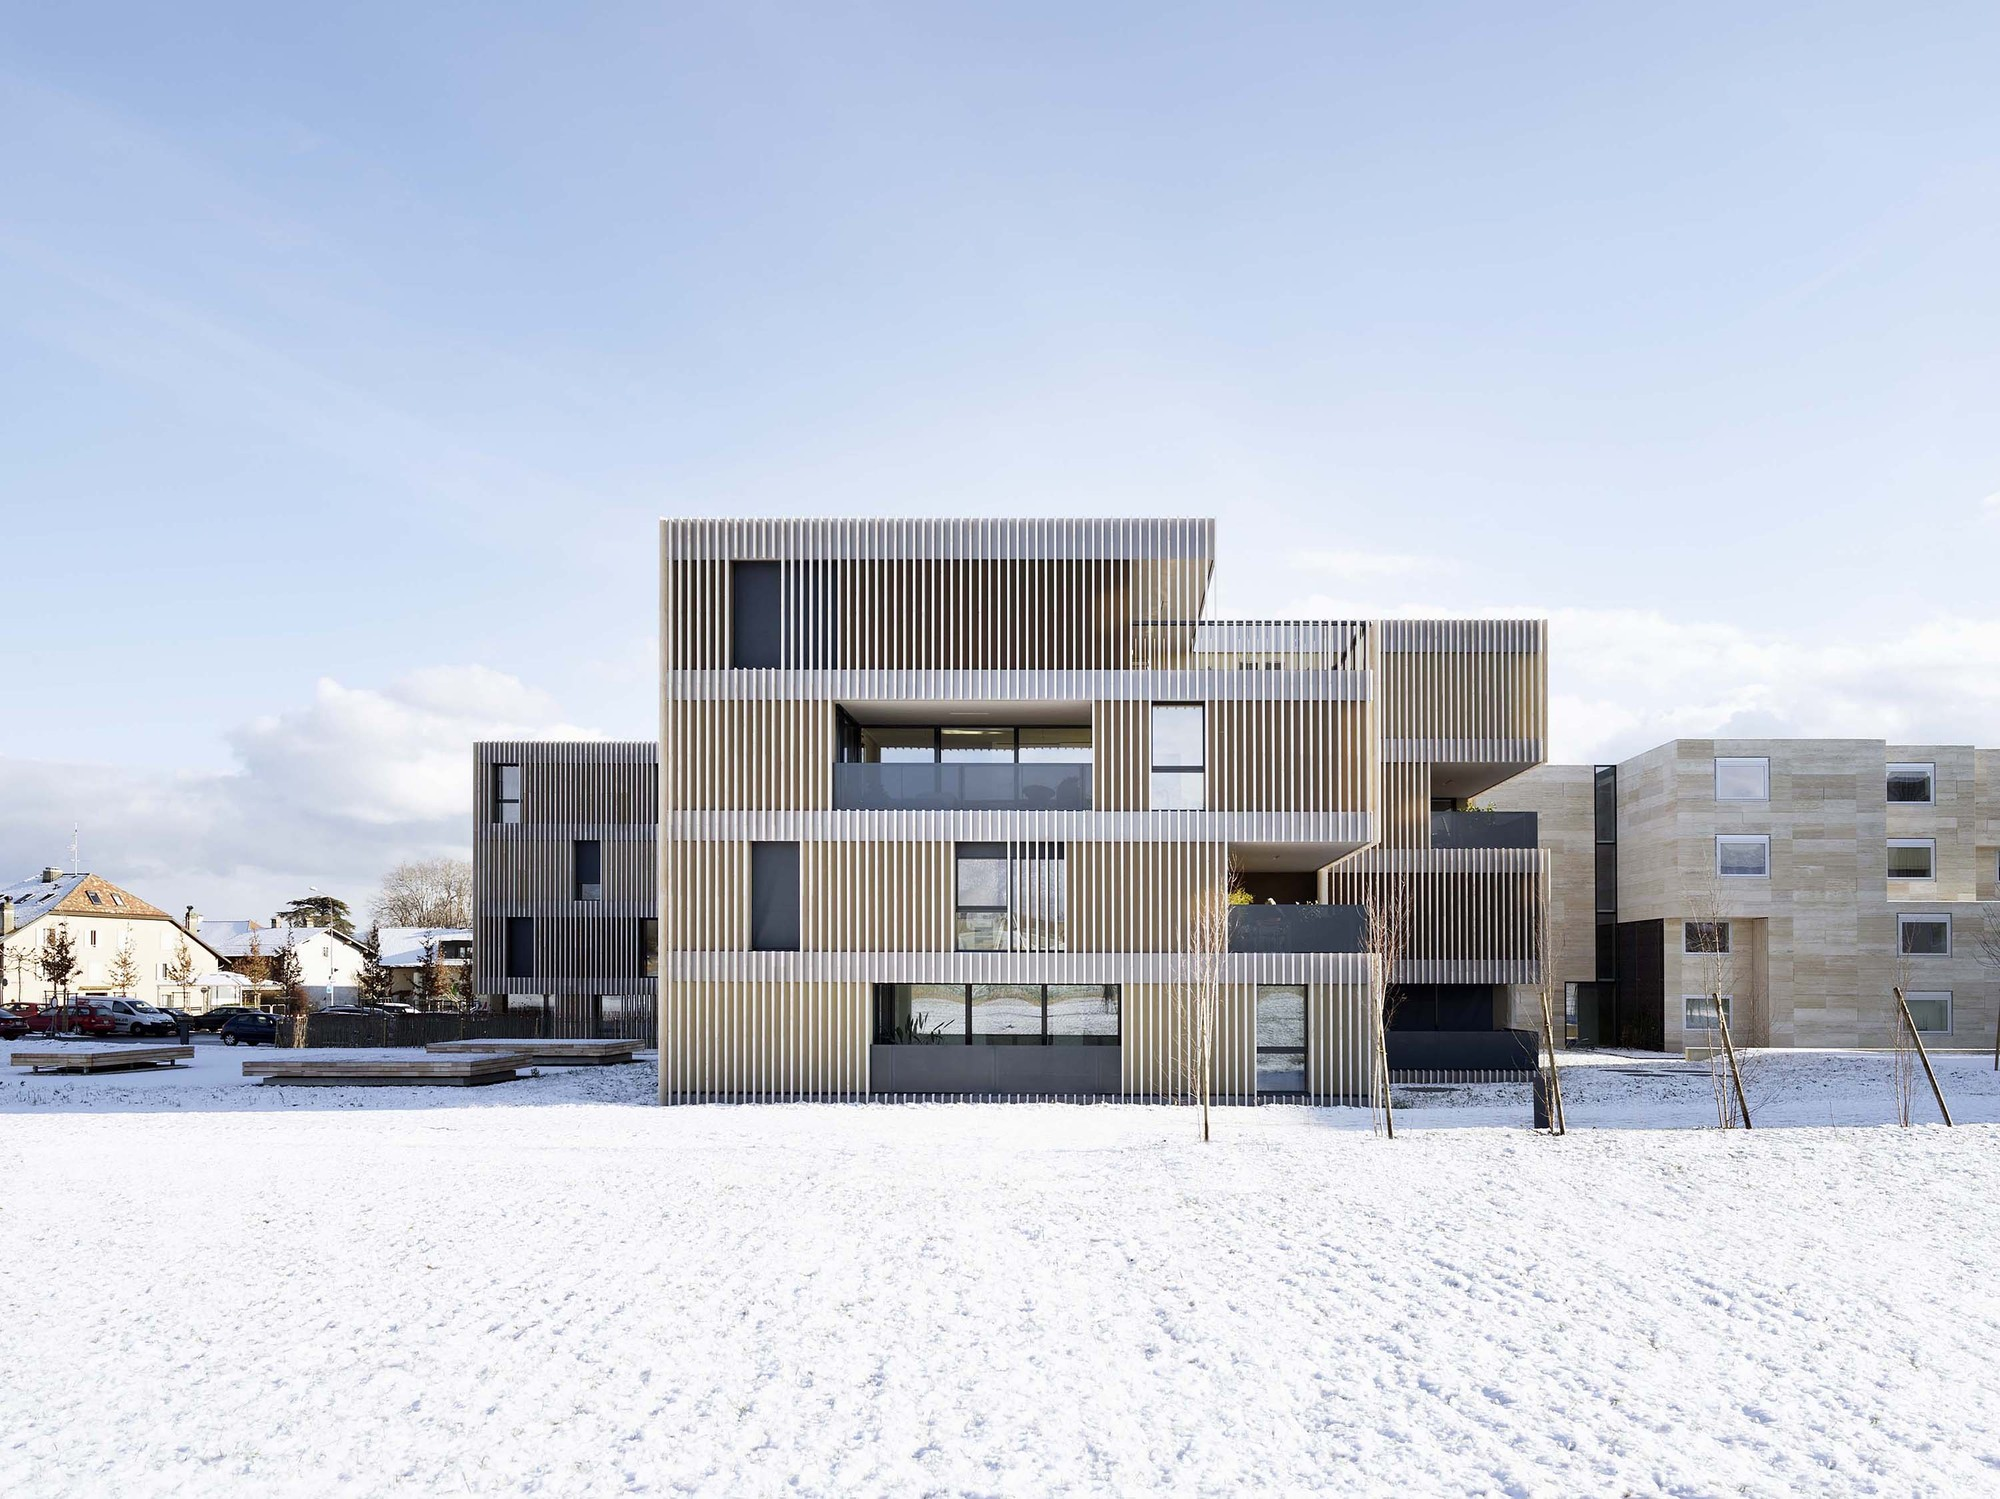 striped living / group8 | archdaily